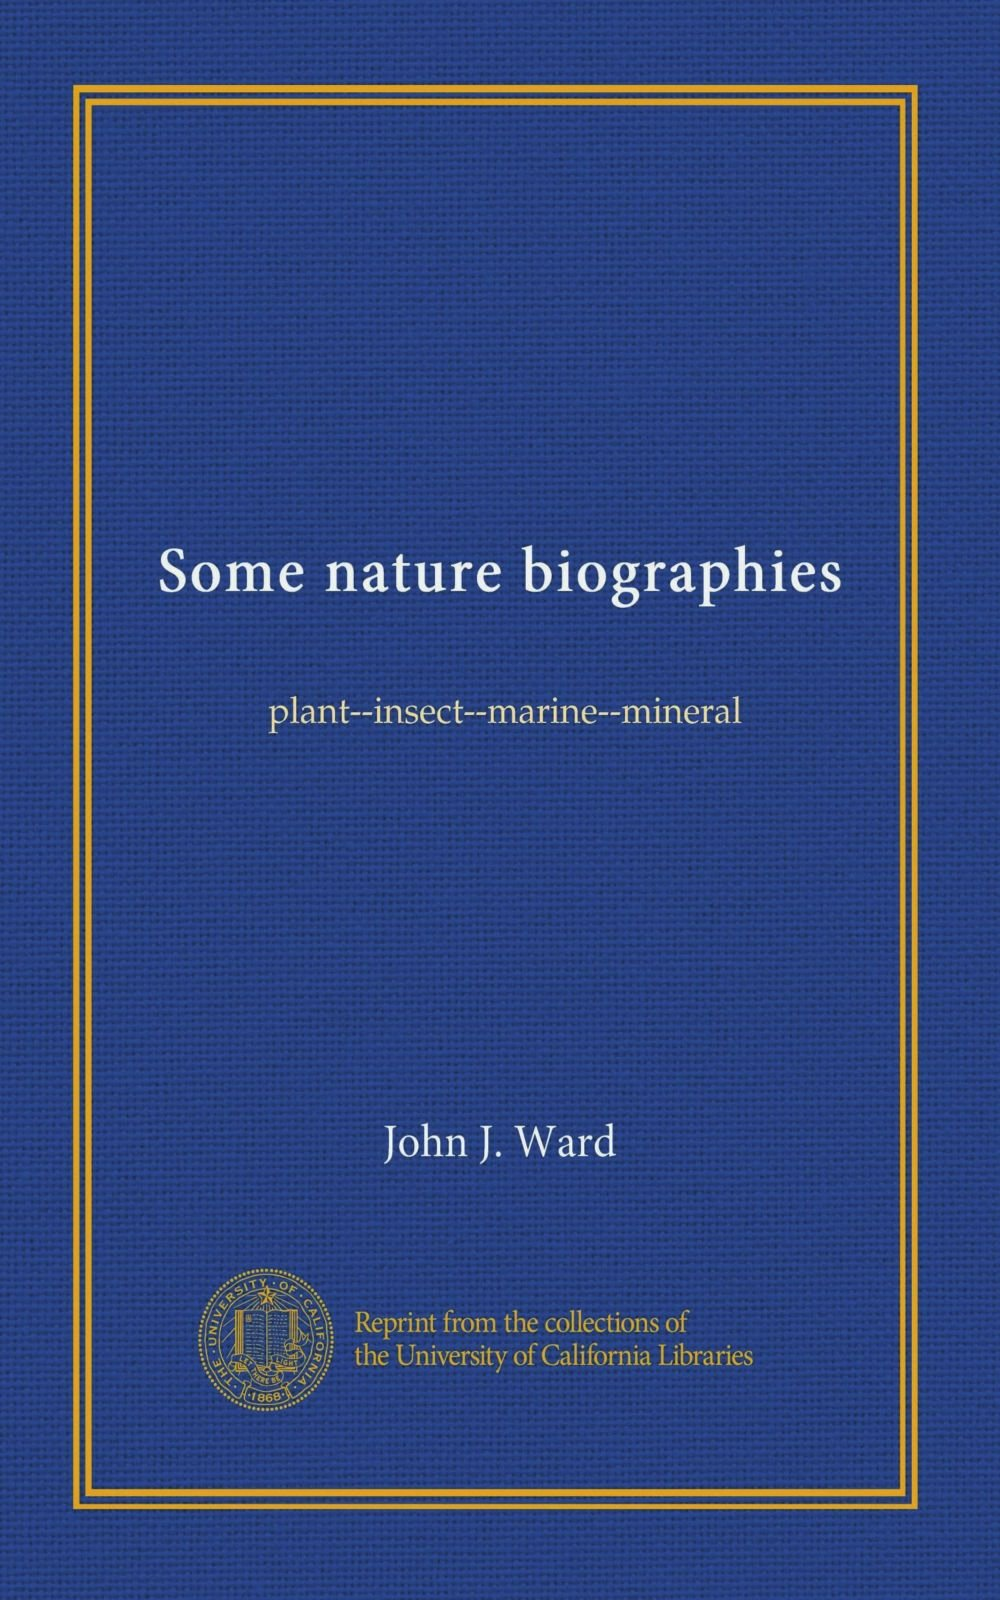 Download Some nature biographies: plant--insect--marine--mineral PDF